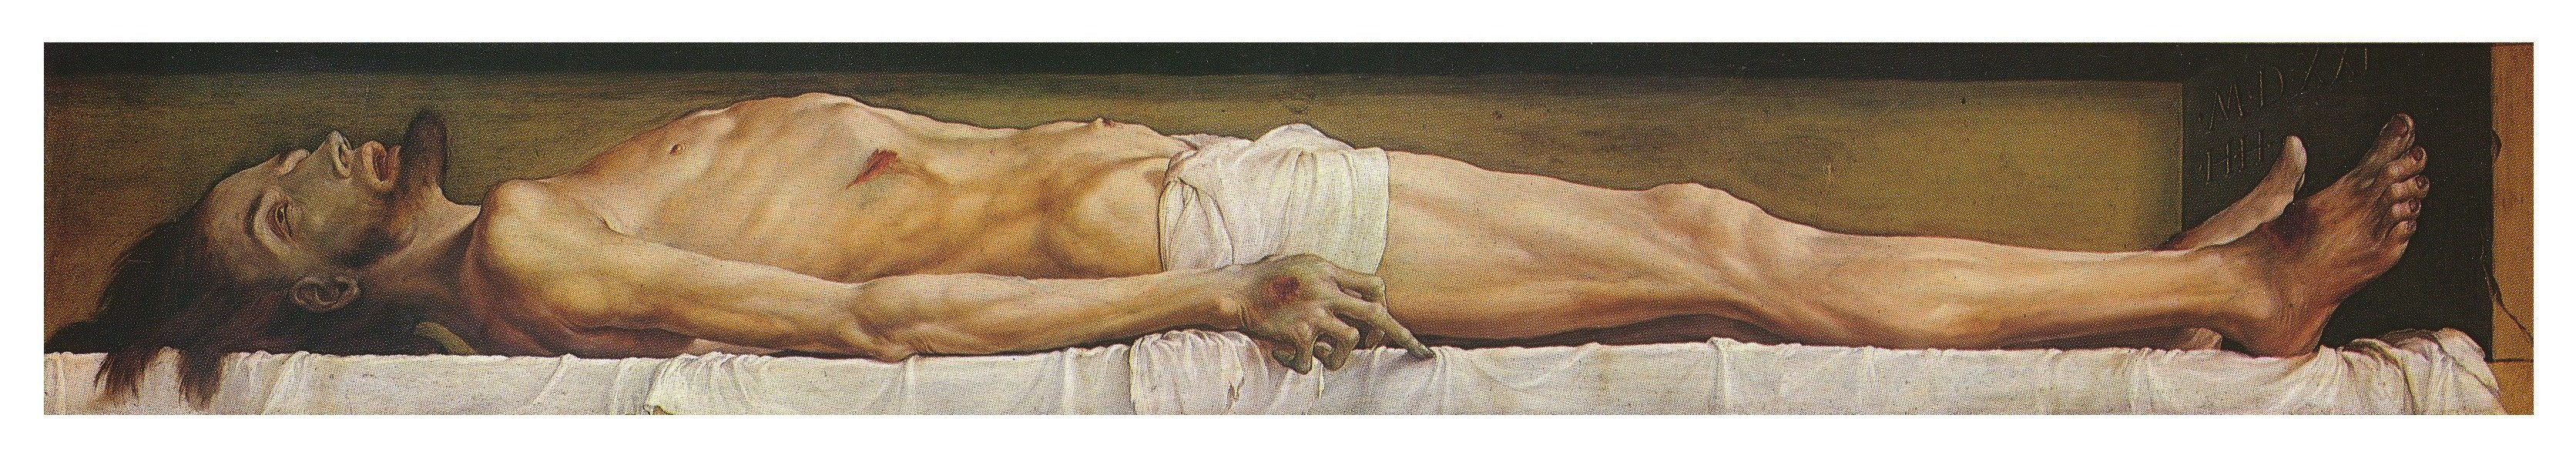 The_Body_of_the_Dead_Christ_in_the_Tomb,_and_a_detail,_by_Hans_Holbein_the_Younger-2